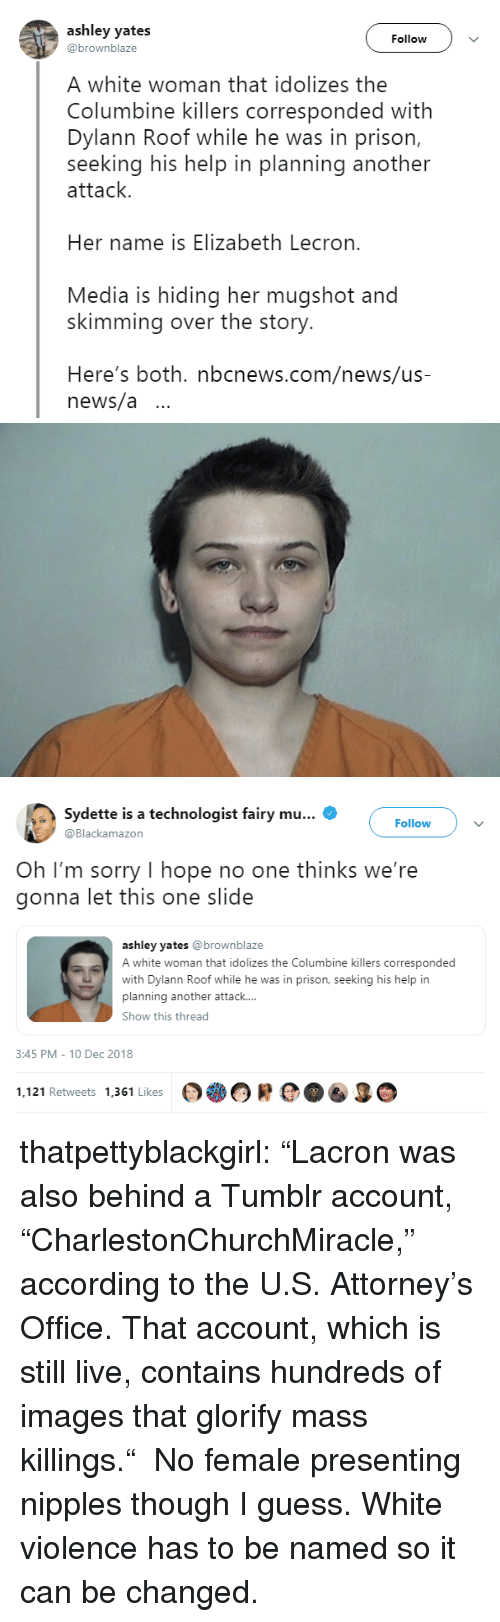 "oh-im-sorry: ashley yates  @brownblaze  Follow  A white woman that idolizes the  Columbine killers corresponded with  Dylann Roof while he was in prison,  seeking his help in planning another  attack.  Her name is Elizabeth Lecron.  Media is hiding her mugshot and  skimming over the story.  Here's both. nbcnews.com/news/us-  news/a ..   Sydette is a technologist fairy mu  Blackamazon  Follow  Oh I'm sorry I hope no one thinks we're  gonna let this one slide  ashley yates @brownblaze  A white woman that idolizes the Columbine killers corresponded  with Dylann Roof while he was in prison, seeking his help in  planning another attack....  Show this thread  3:45 PM-10 Dec 2018  1.121 Retweets 1361 Likes OOR  O thatpettyblackgirl:    ""Lacron was also behind a Tumblr account, ""CharlestonChurchMiracle,"" according to the U.S. Attorney's Office. That account, which is still live, contains hundreds of images that glorify mass killings.""  No female presenting nipples though I guess.     White violence has to be named so it can be changed."